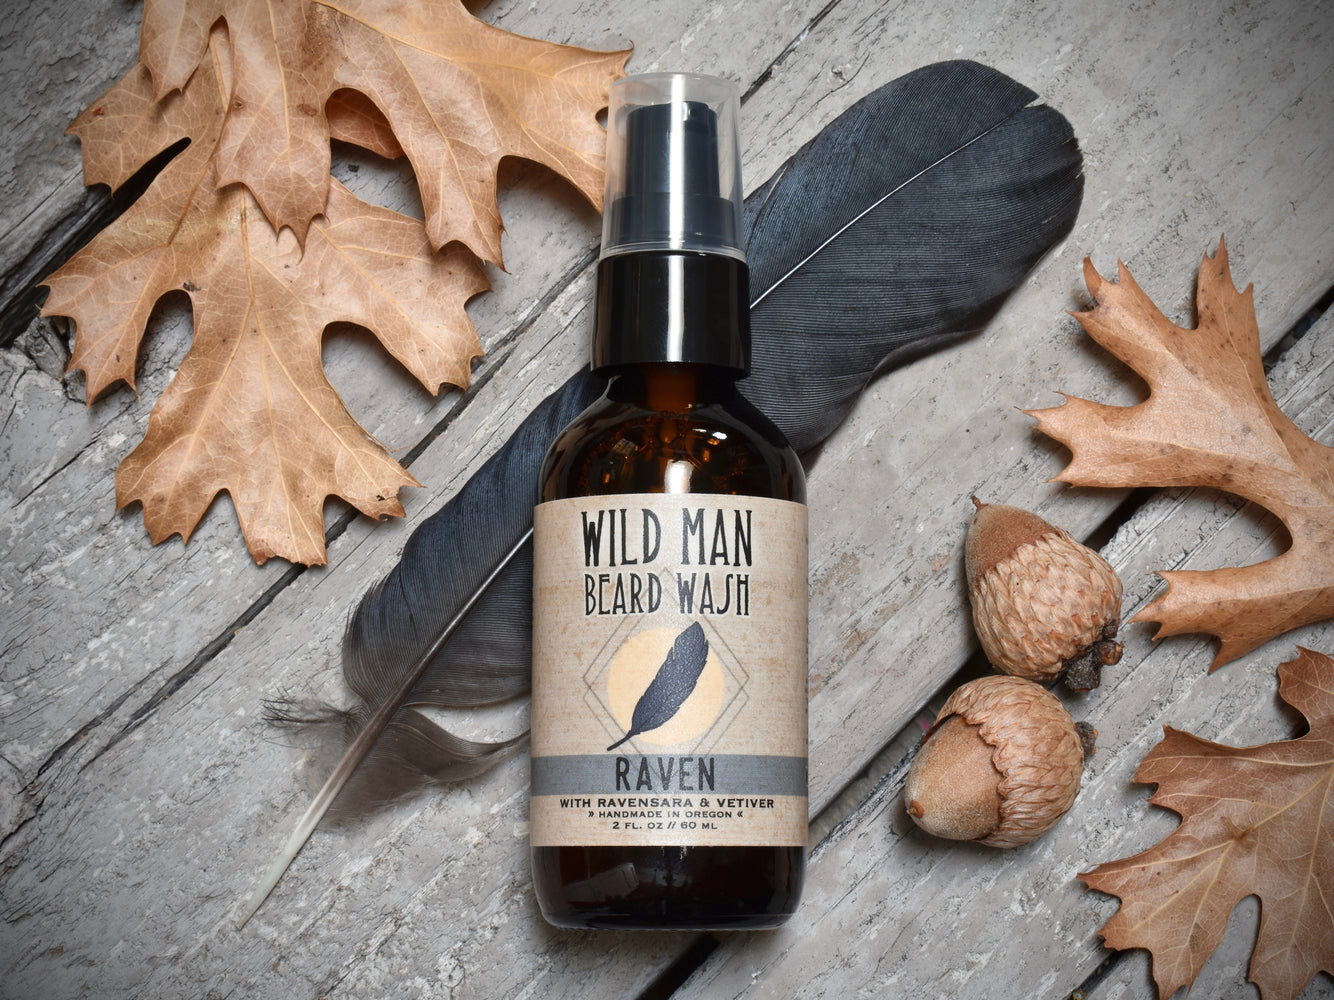 Wild Man Beard Wash - Raven